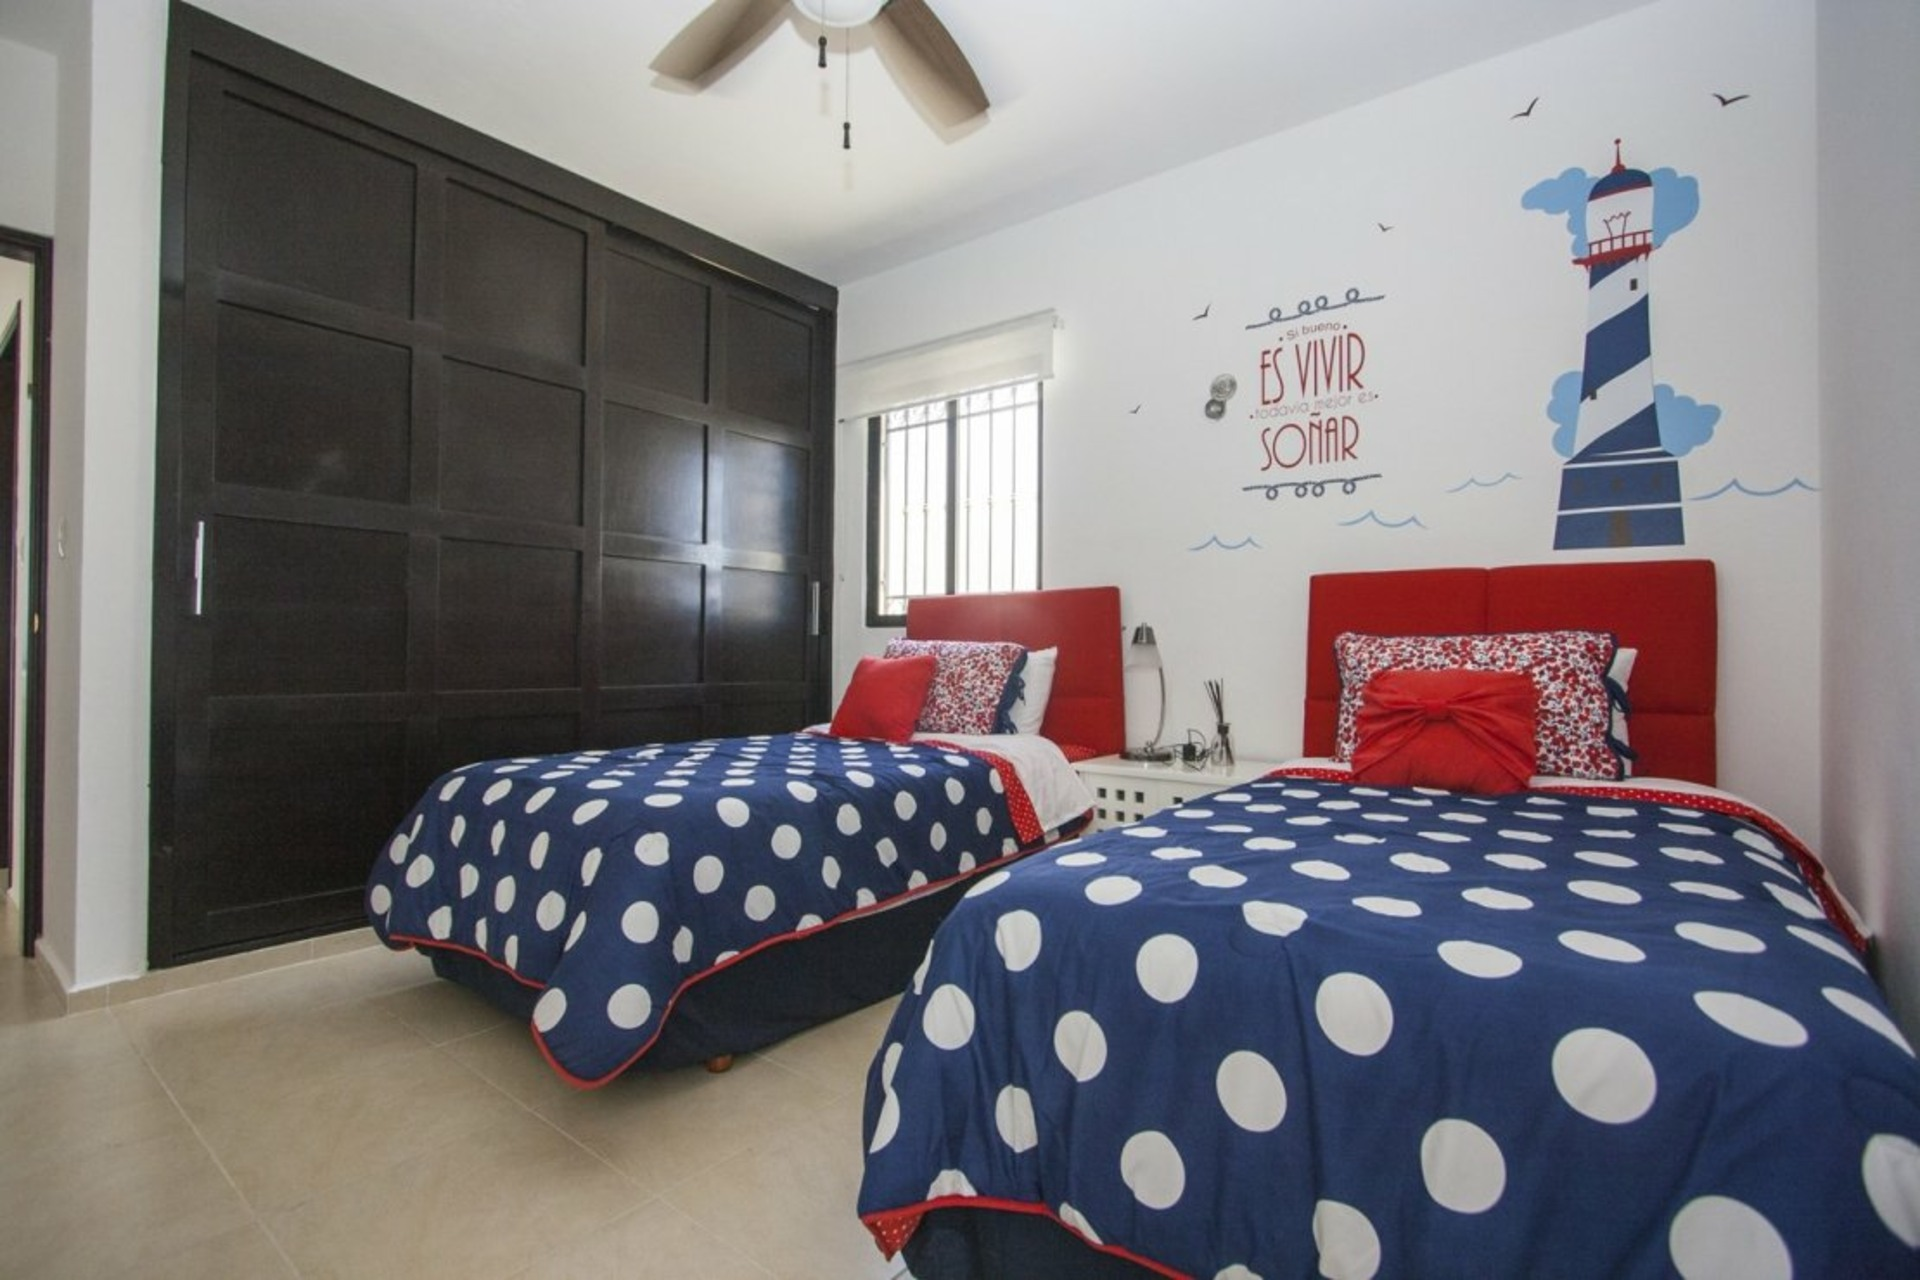 image 8 - House For sale Autres pays / Other countries - 8 rooms